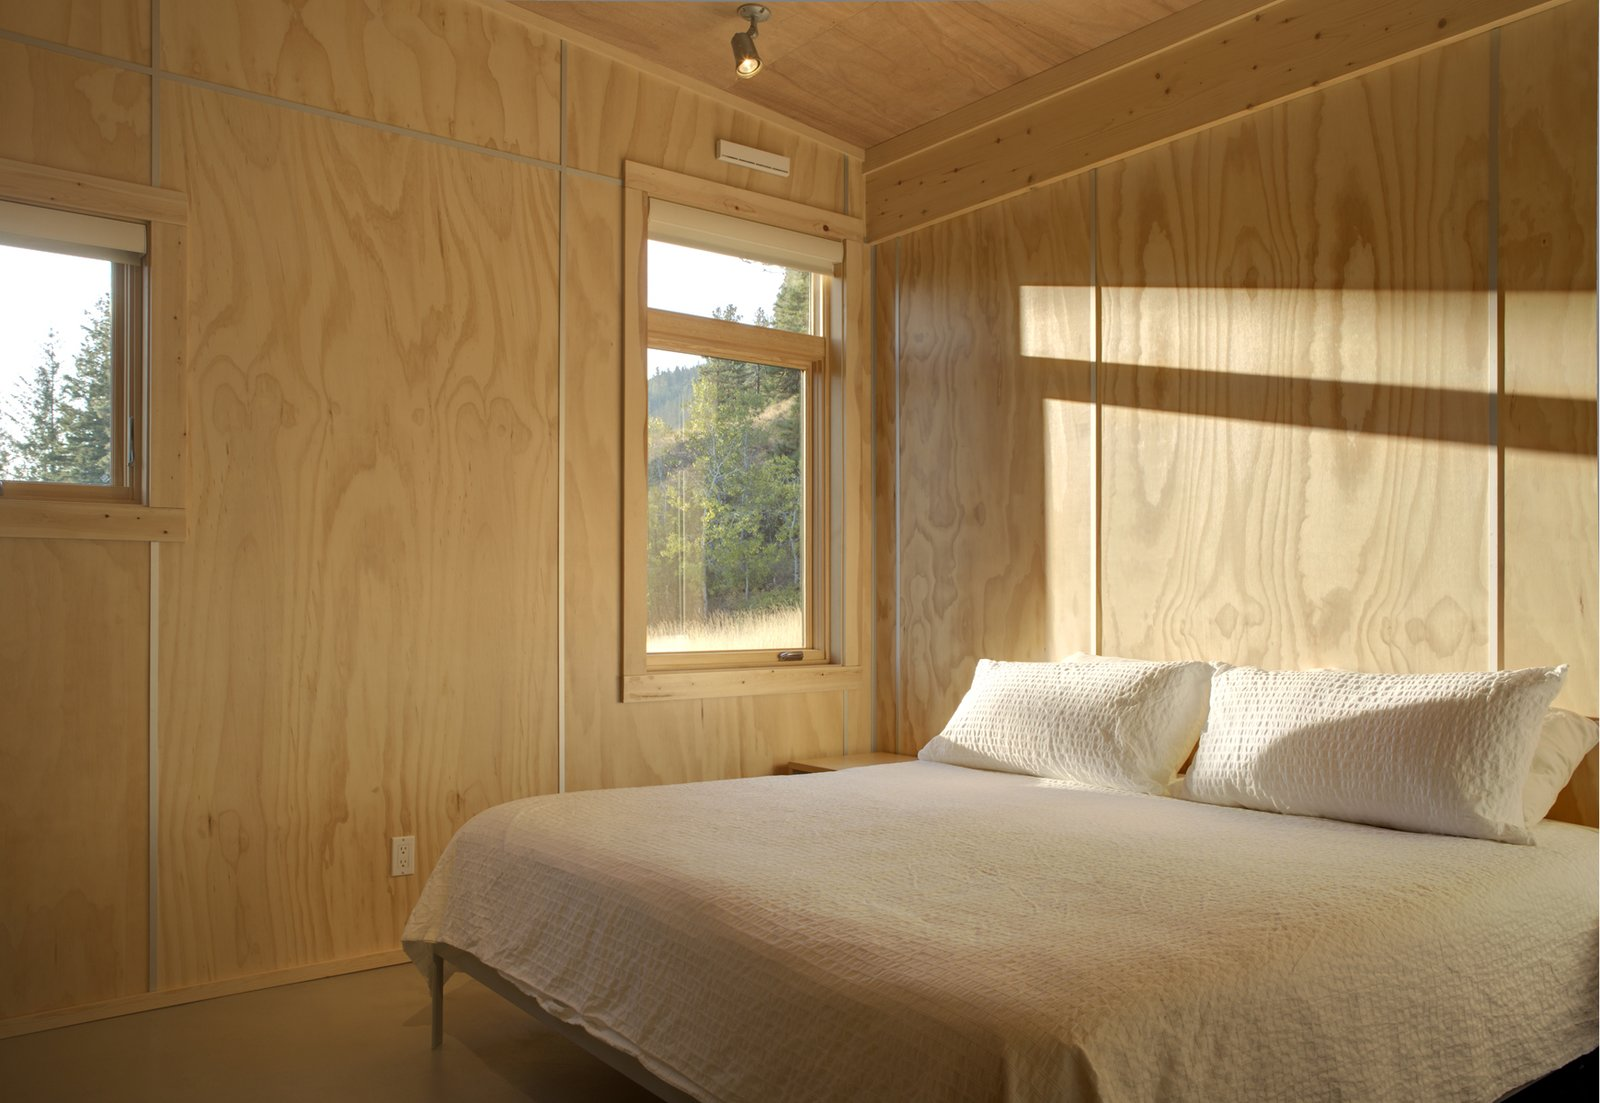 The bedroom is to the immediate right of the entrance; the architects selected plywood for interior surfacing for the warm tones it provided. The aluminum spacers allow for easy installation—they have greater tolerances for gaps as compared to other joints—while doubling as a decorative element.  Bedroom by Lauren Gundlach from Simple Cabin Embraces Its Mountain Setting